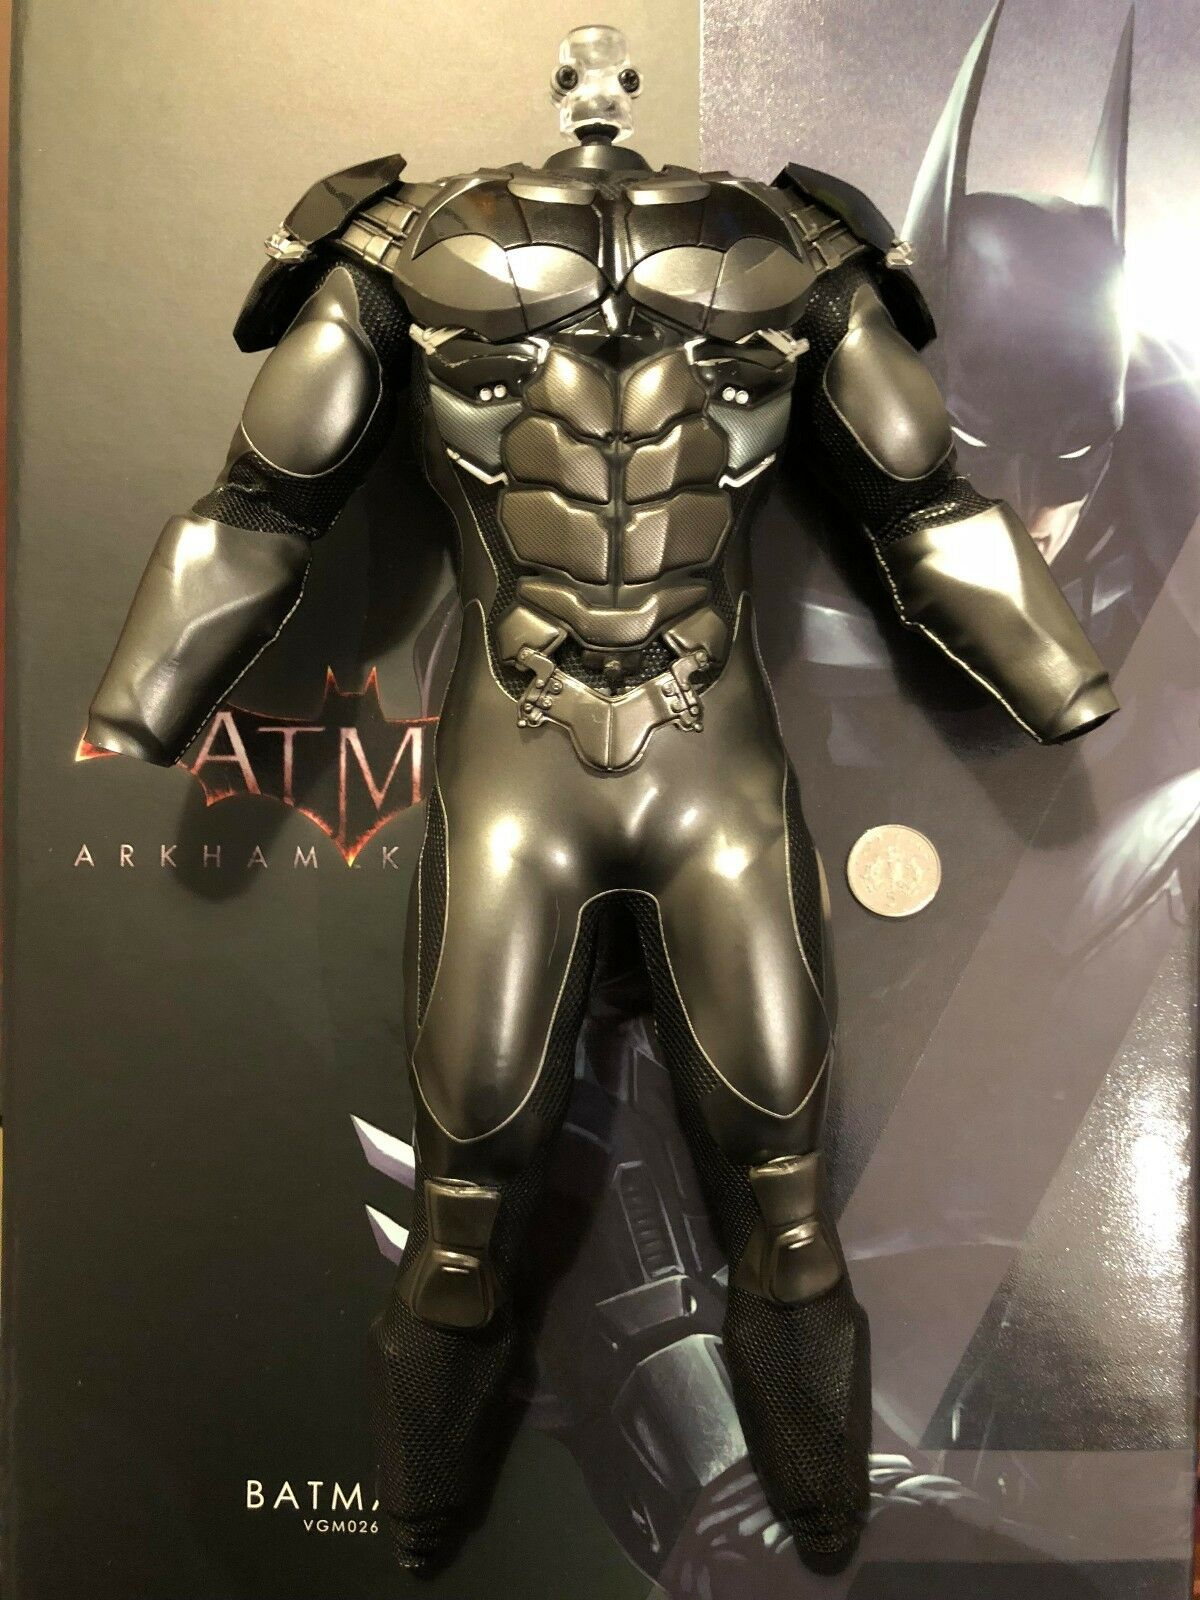 Hot Toys Arkham Knight Batman VGM26 Body & Armour Suit loose 1/6th scale